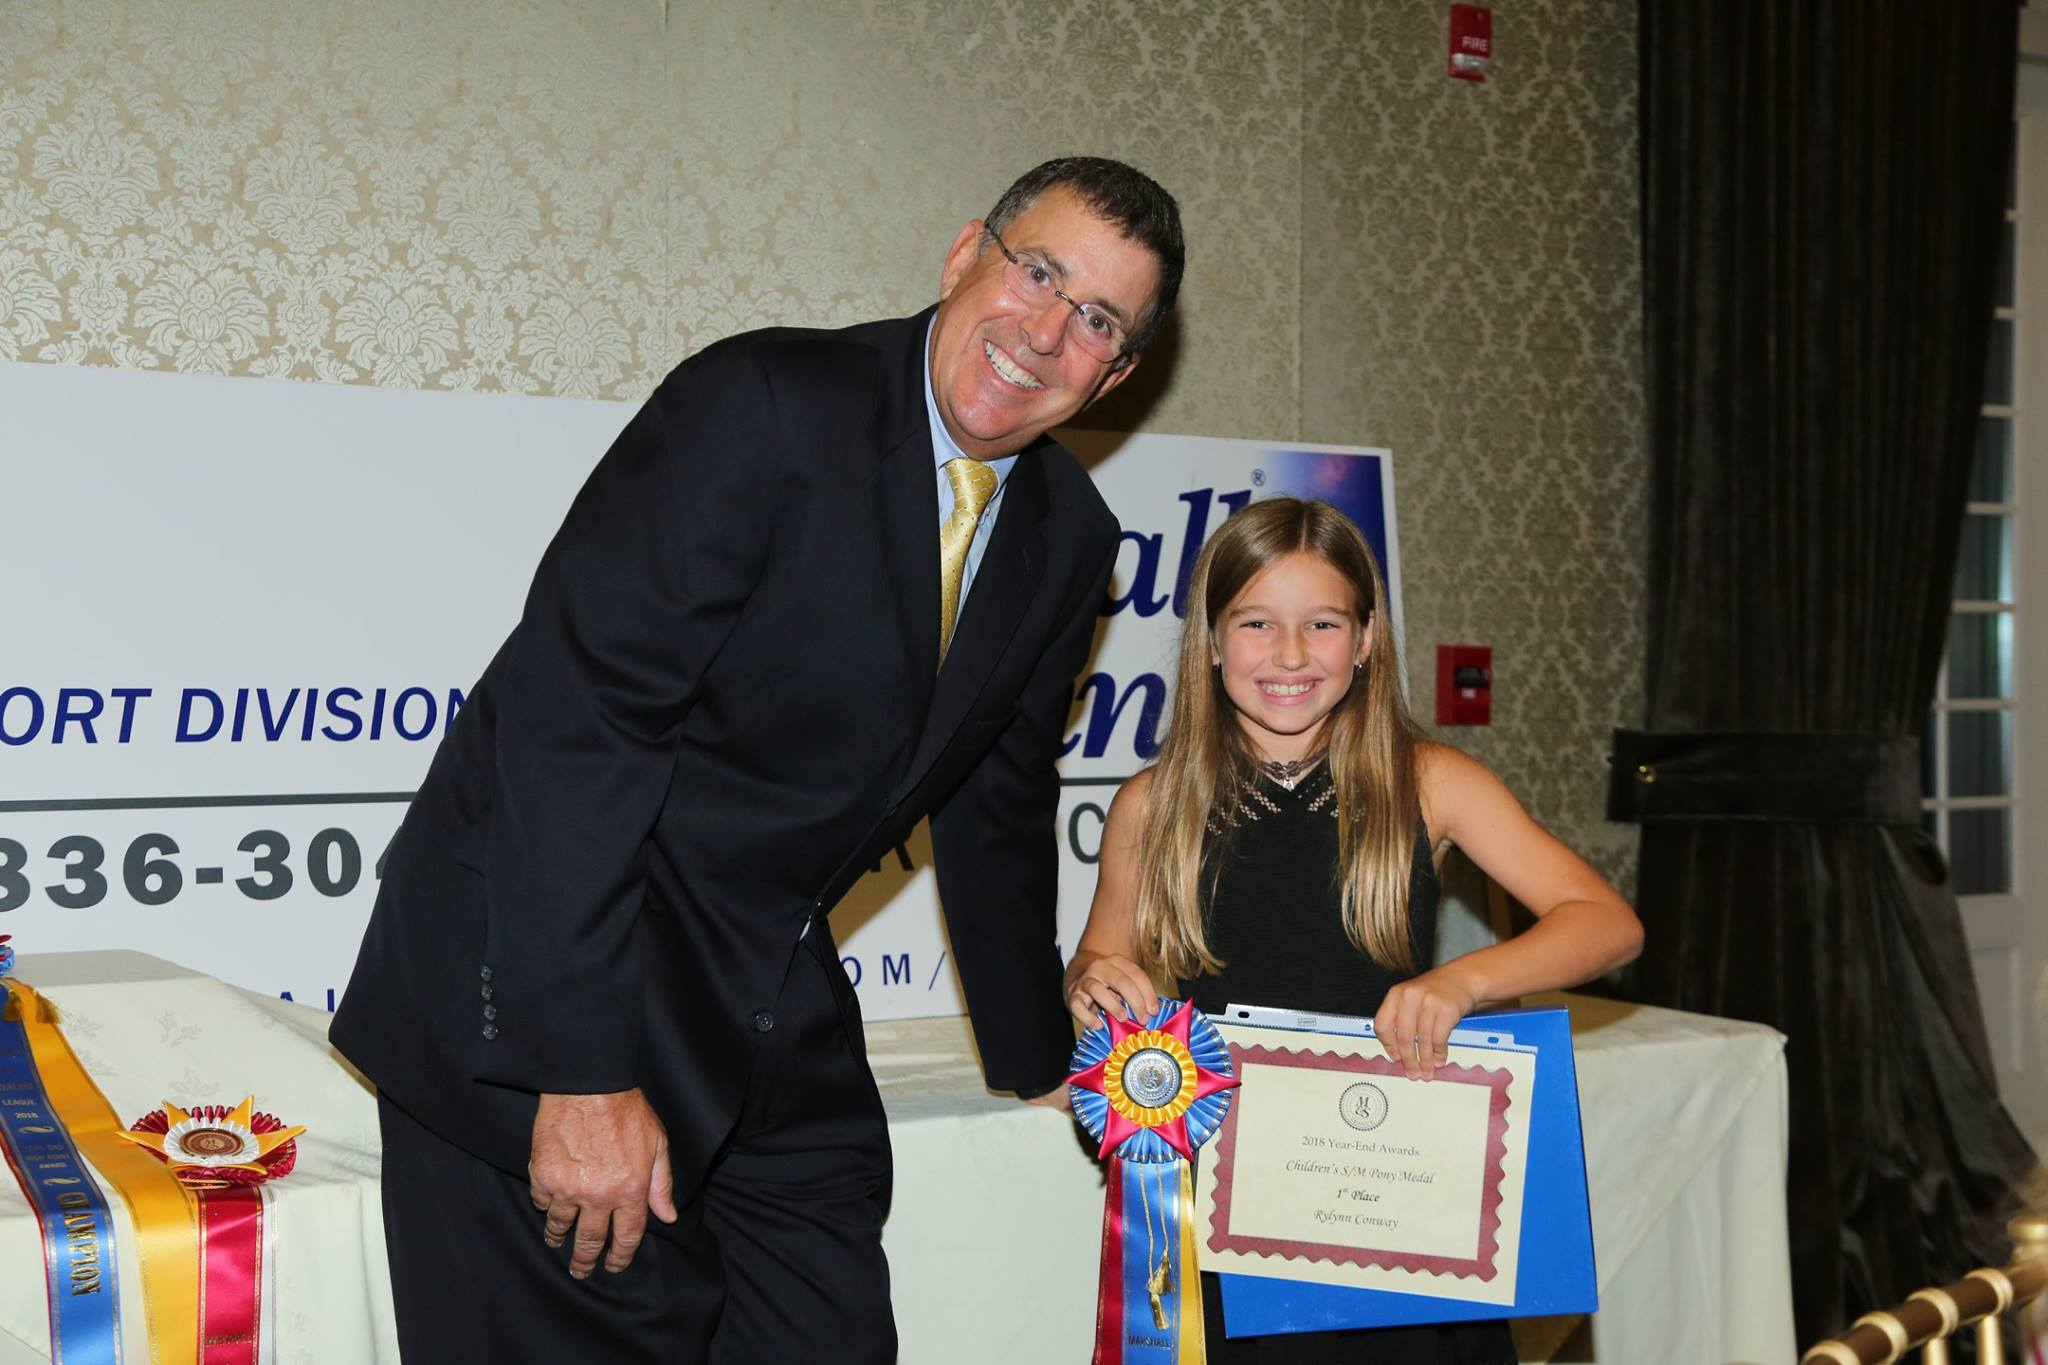 Don Graves with Rylynn conway - Children's small/medium pony medal champion